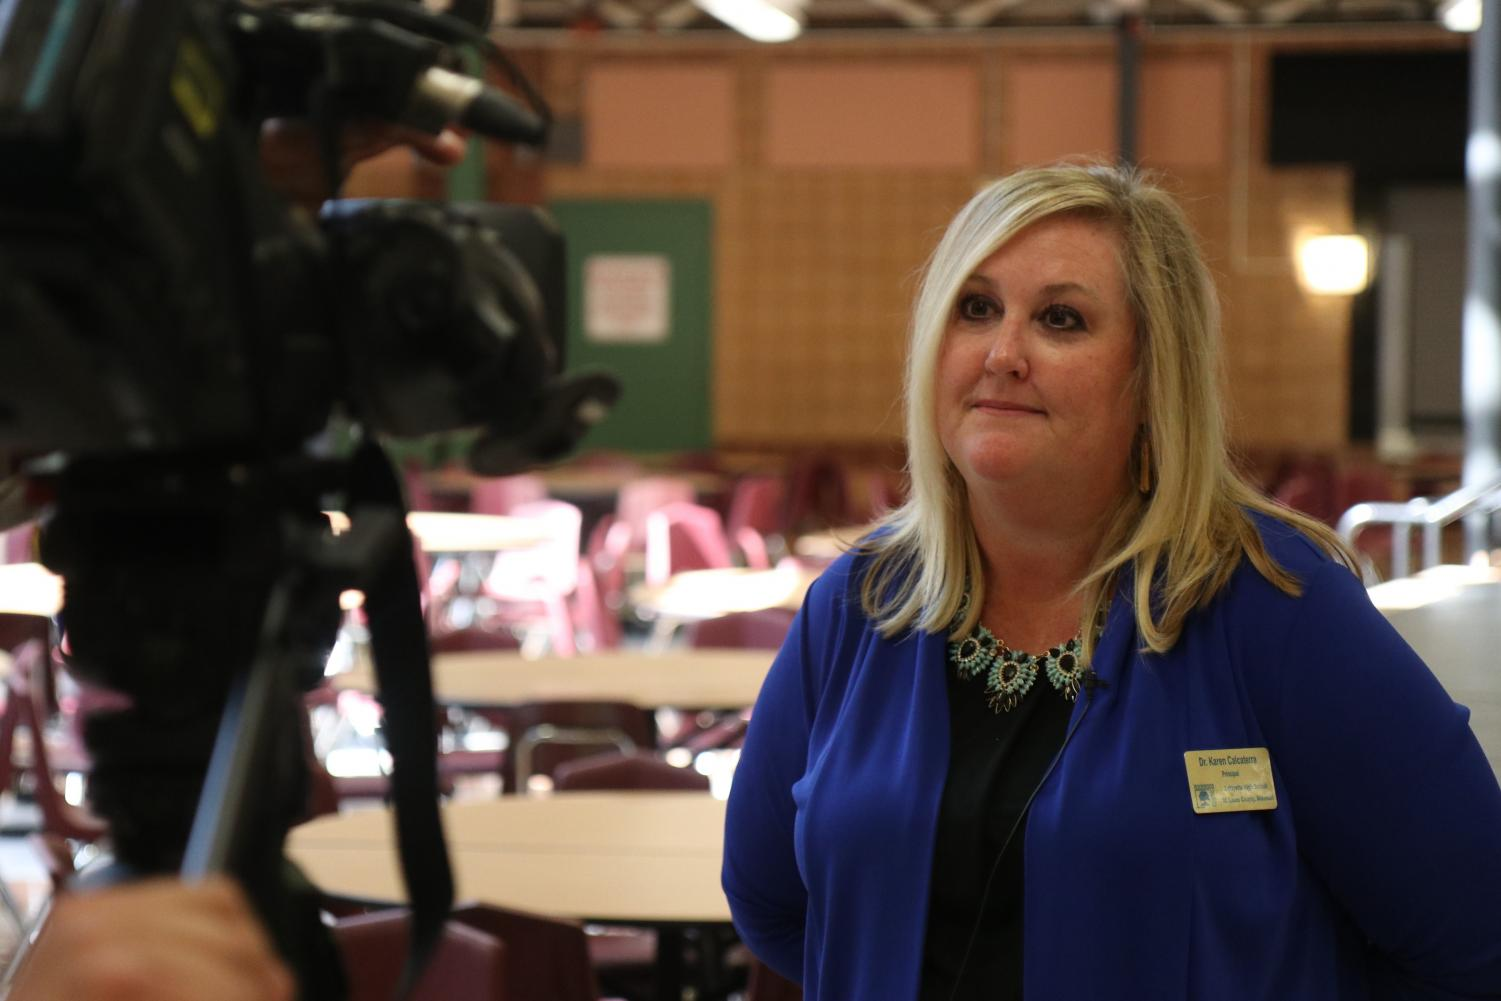 Principal Karen Calcaterra is interviewed by KMOV's Features Reporter, Steve Harris. All of the interviews took place during 4th Hour on Oct. 8.